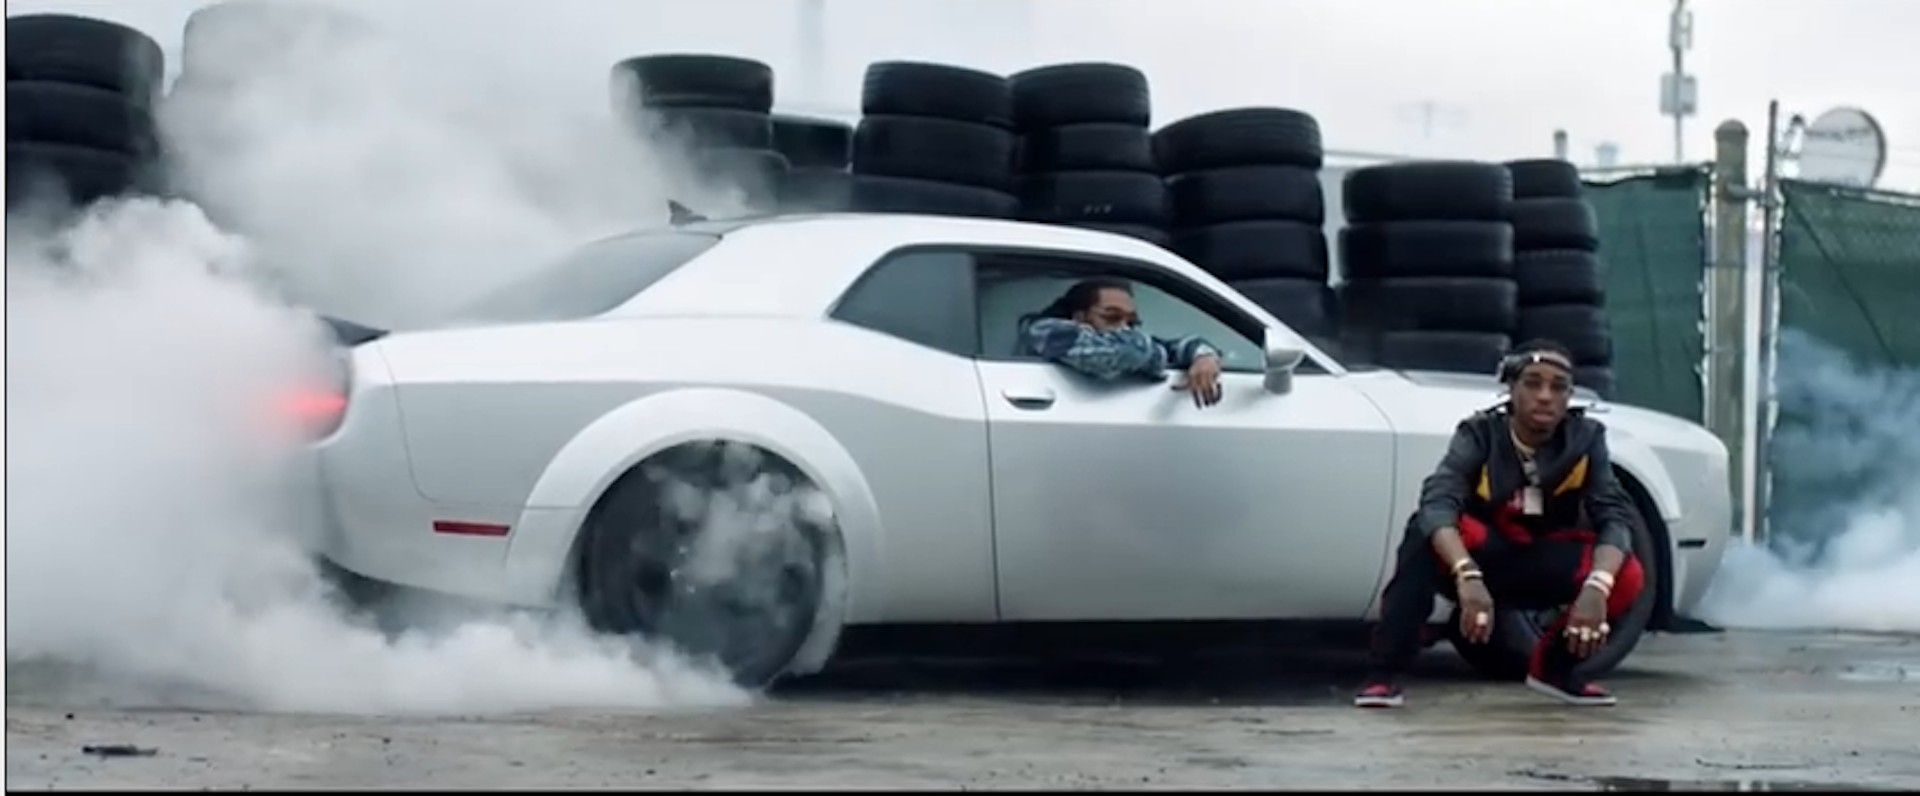 Wrx Sti 0 60 >> 'The Fate of the Furious' music video features the Dodge Demon